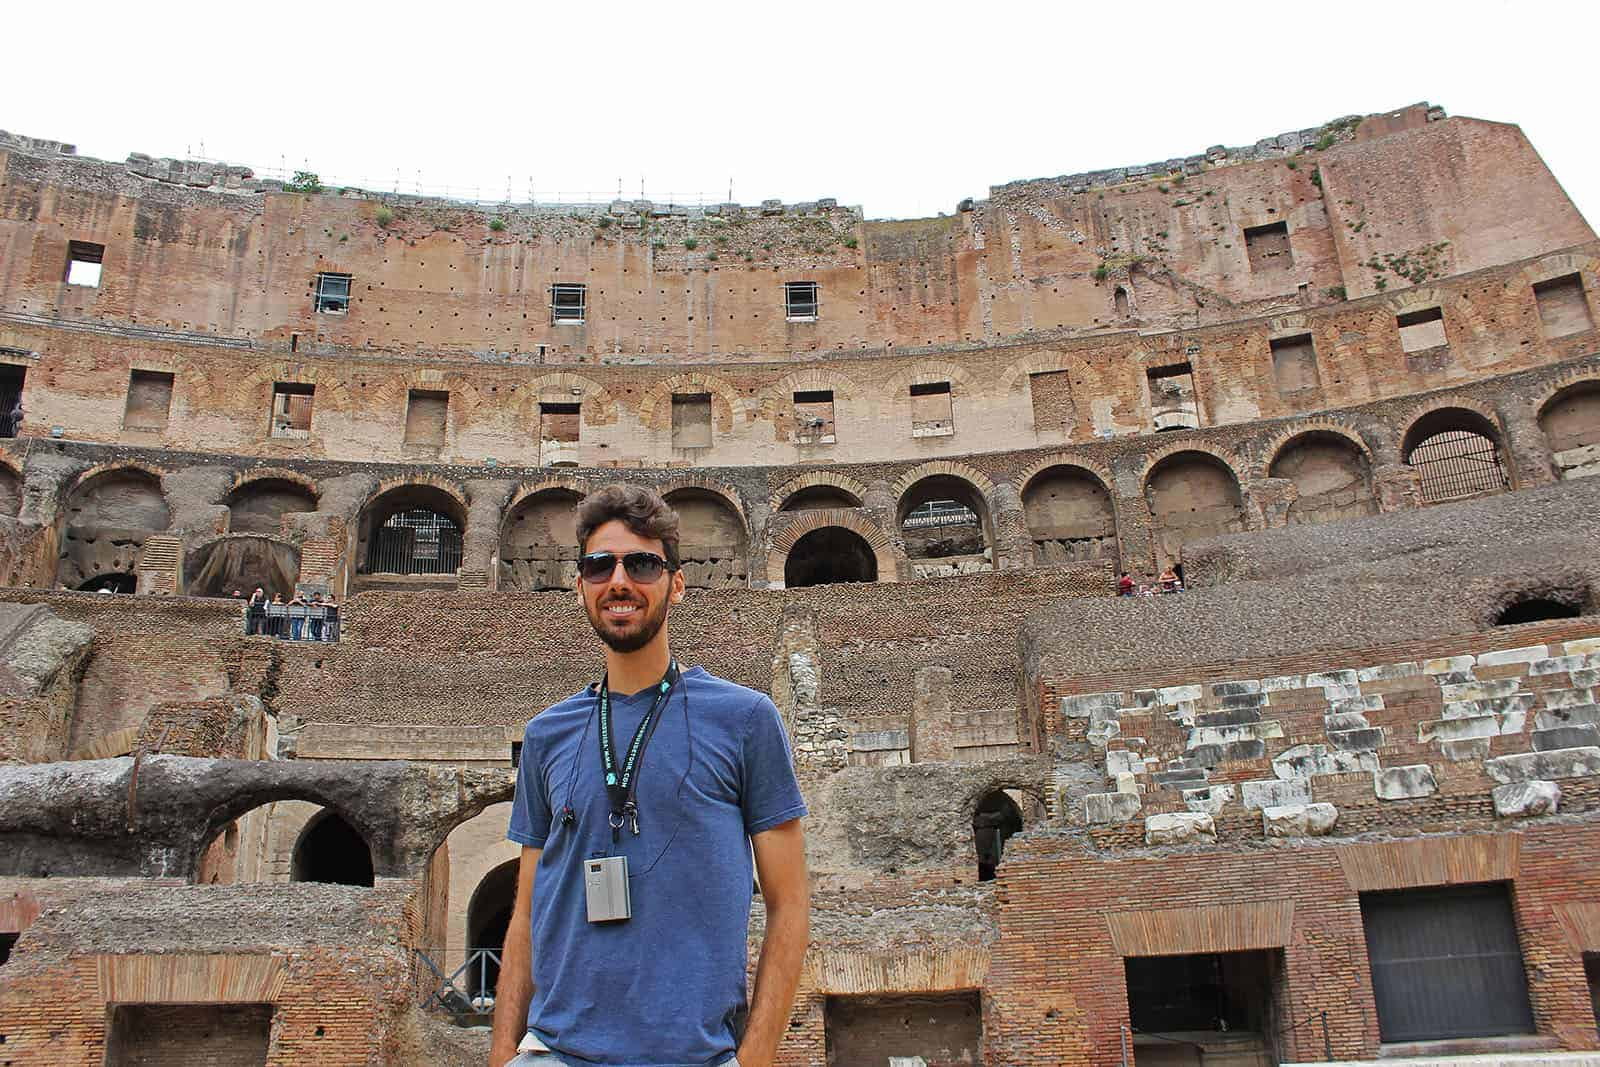 The ultimate Colosseum tour in Rome with The Roman Guy